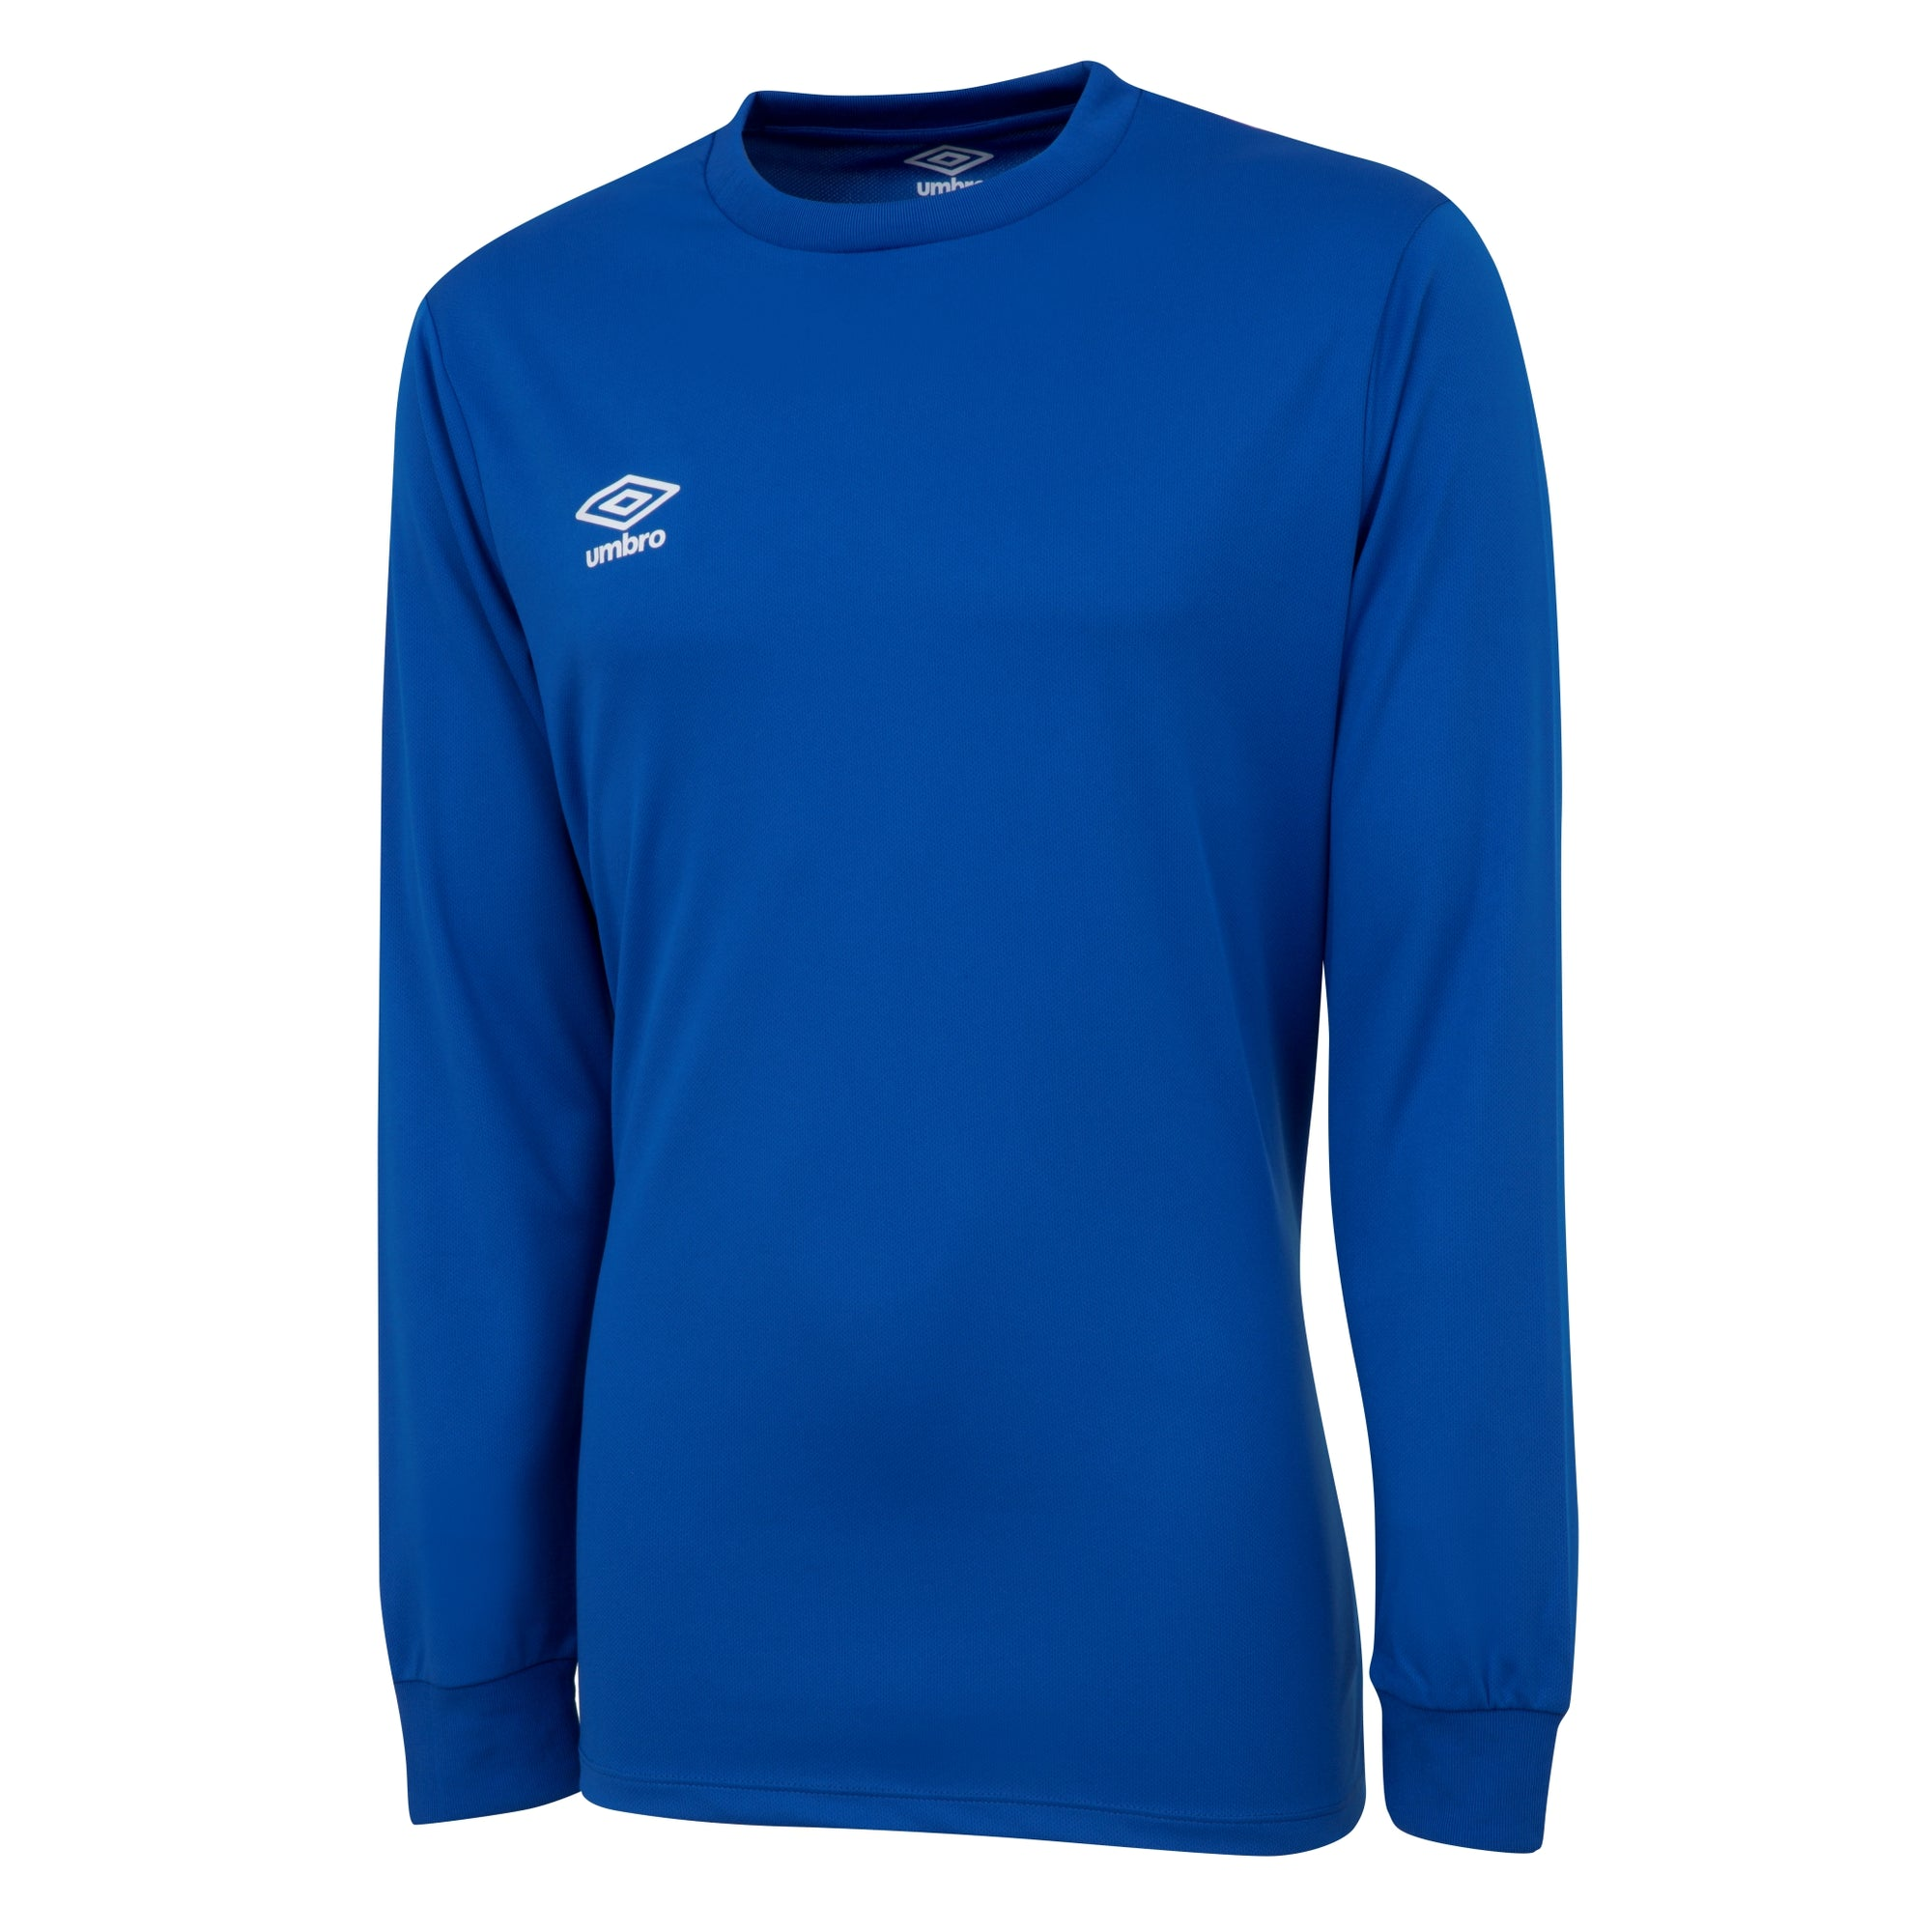 Umbro long sleeve club jersey in royal blue with white printed Umbro logo